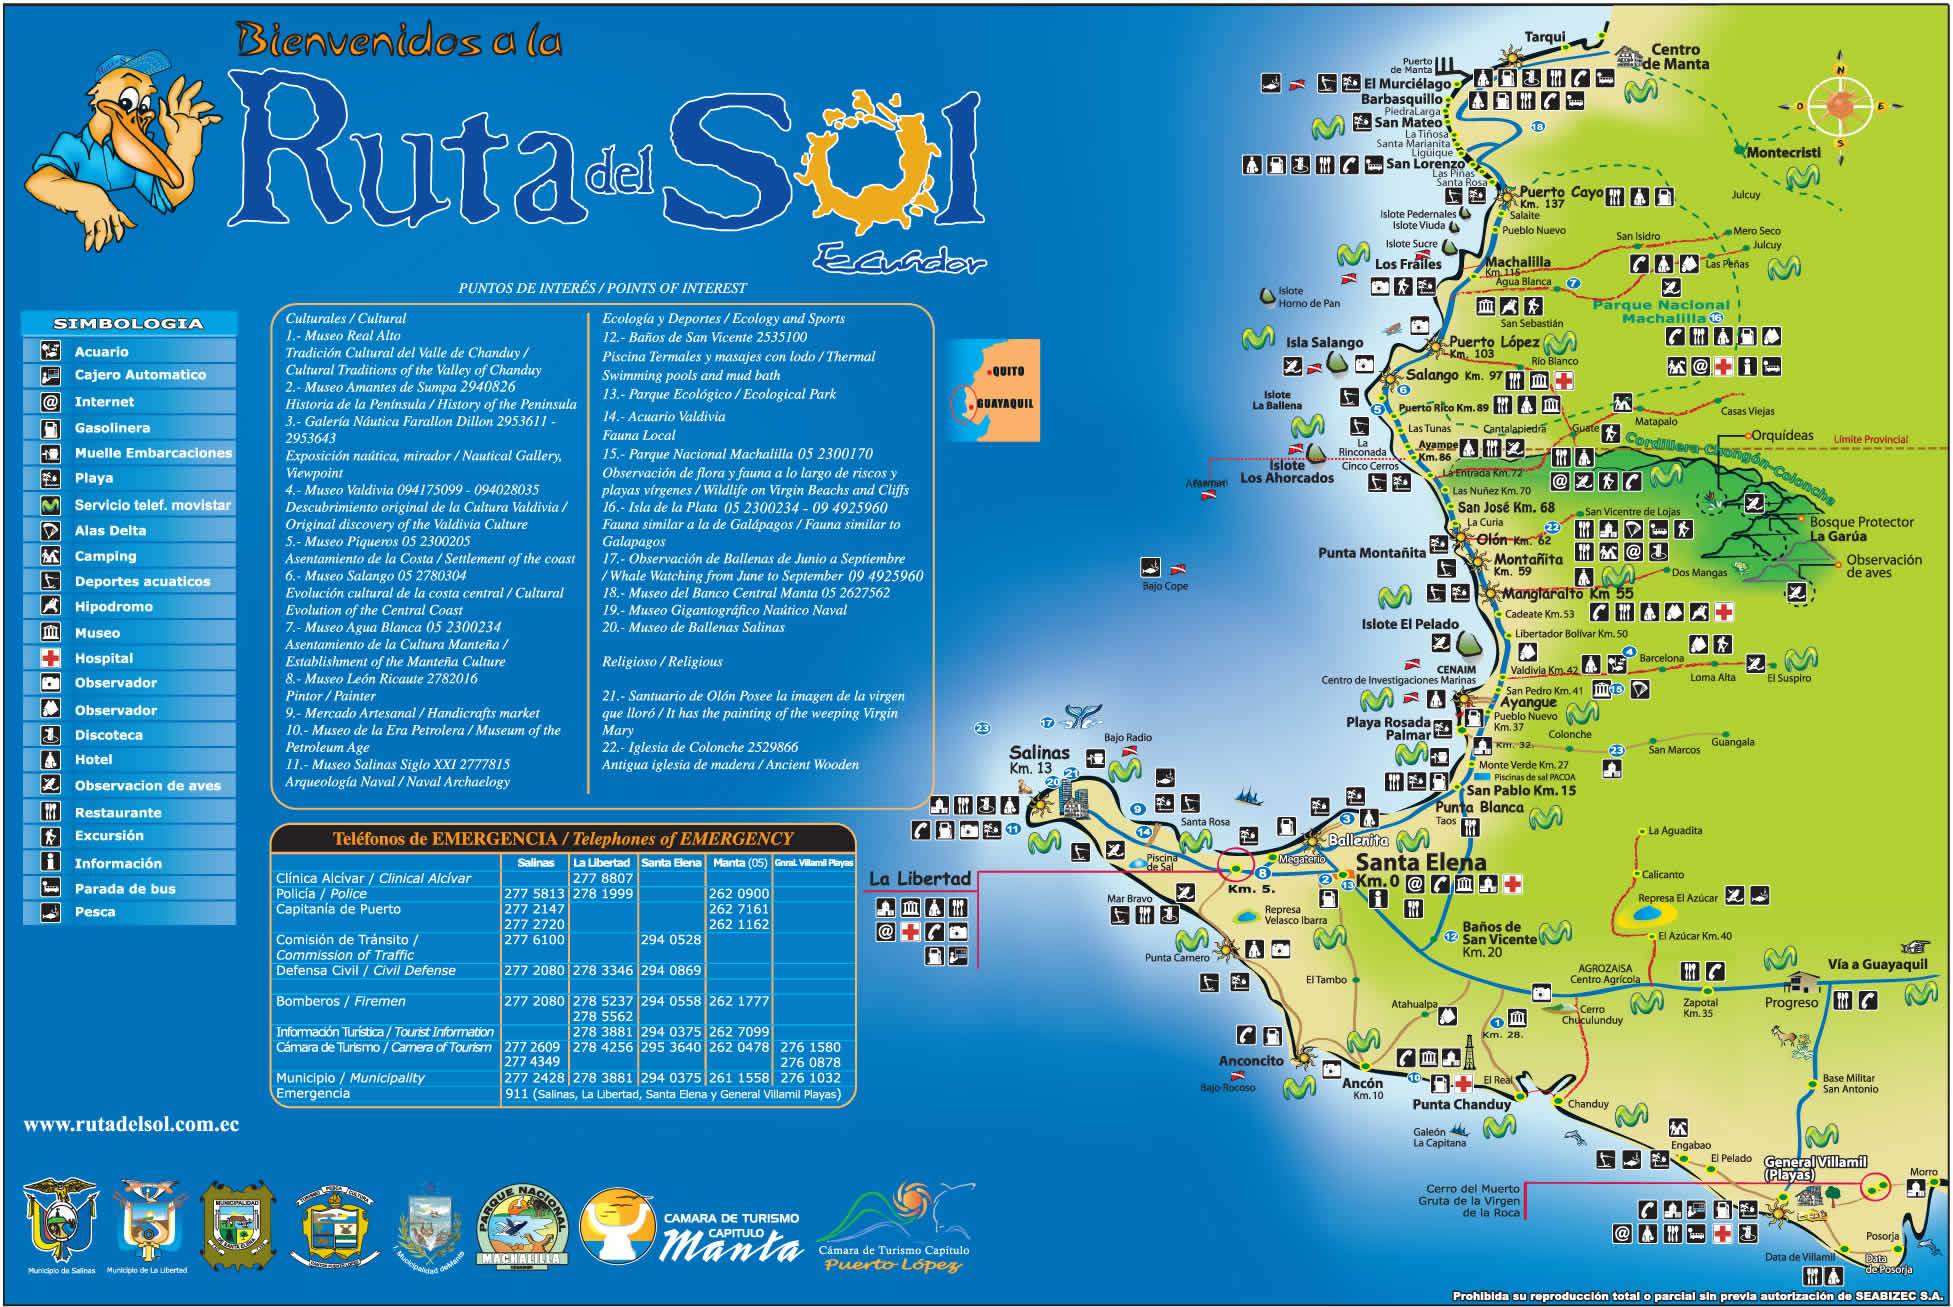 Map of the Ruta del Sol Click for a larger view